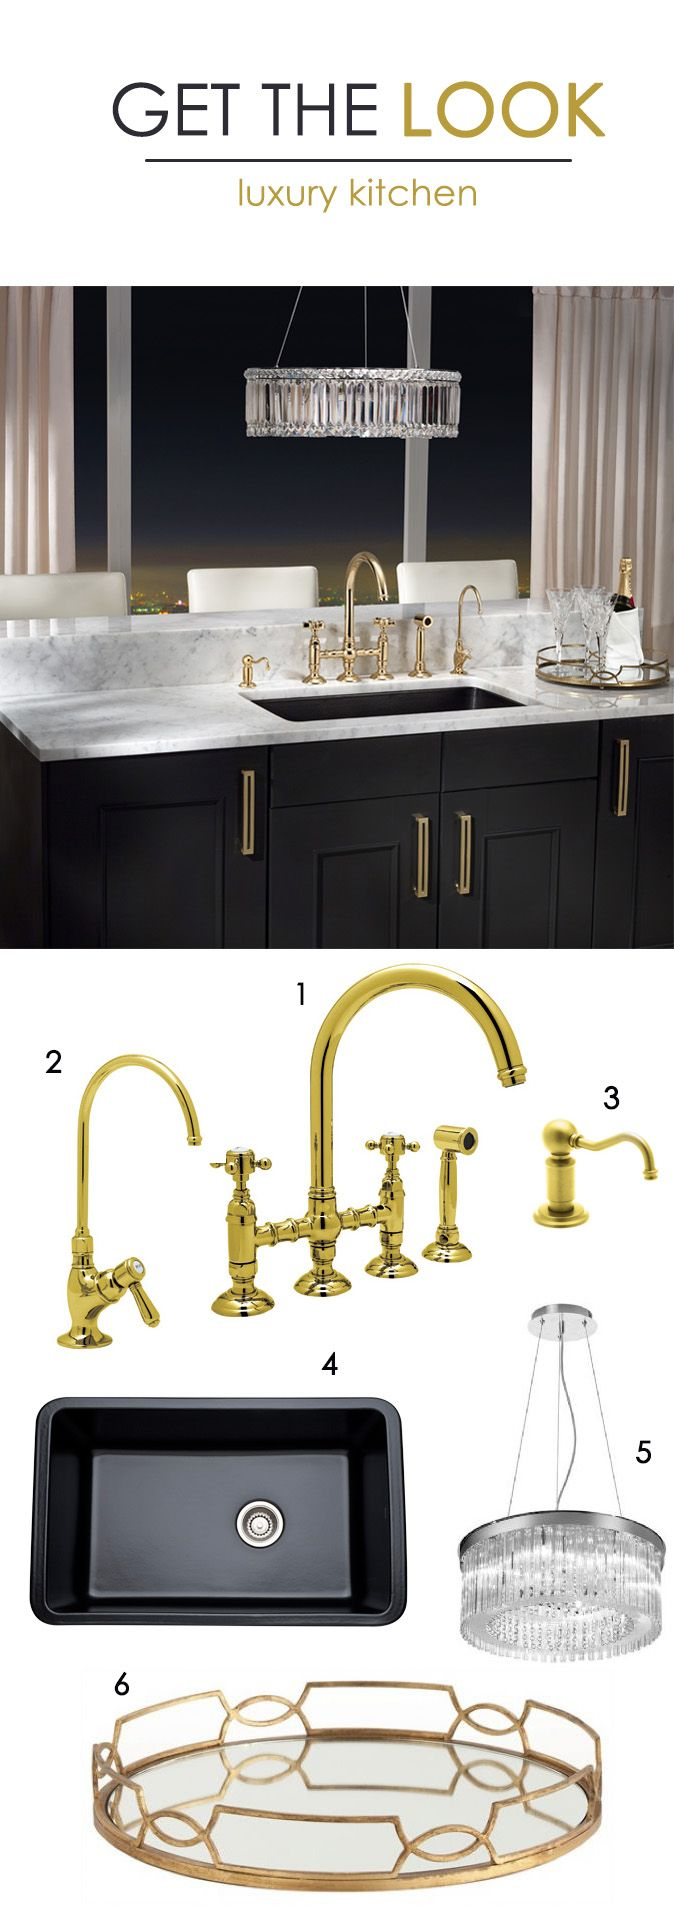 Luxury Kitchen: 1. Rohl Country Kitchen Faucet 2. Rohl C-Spout ...